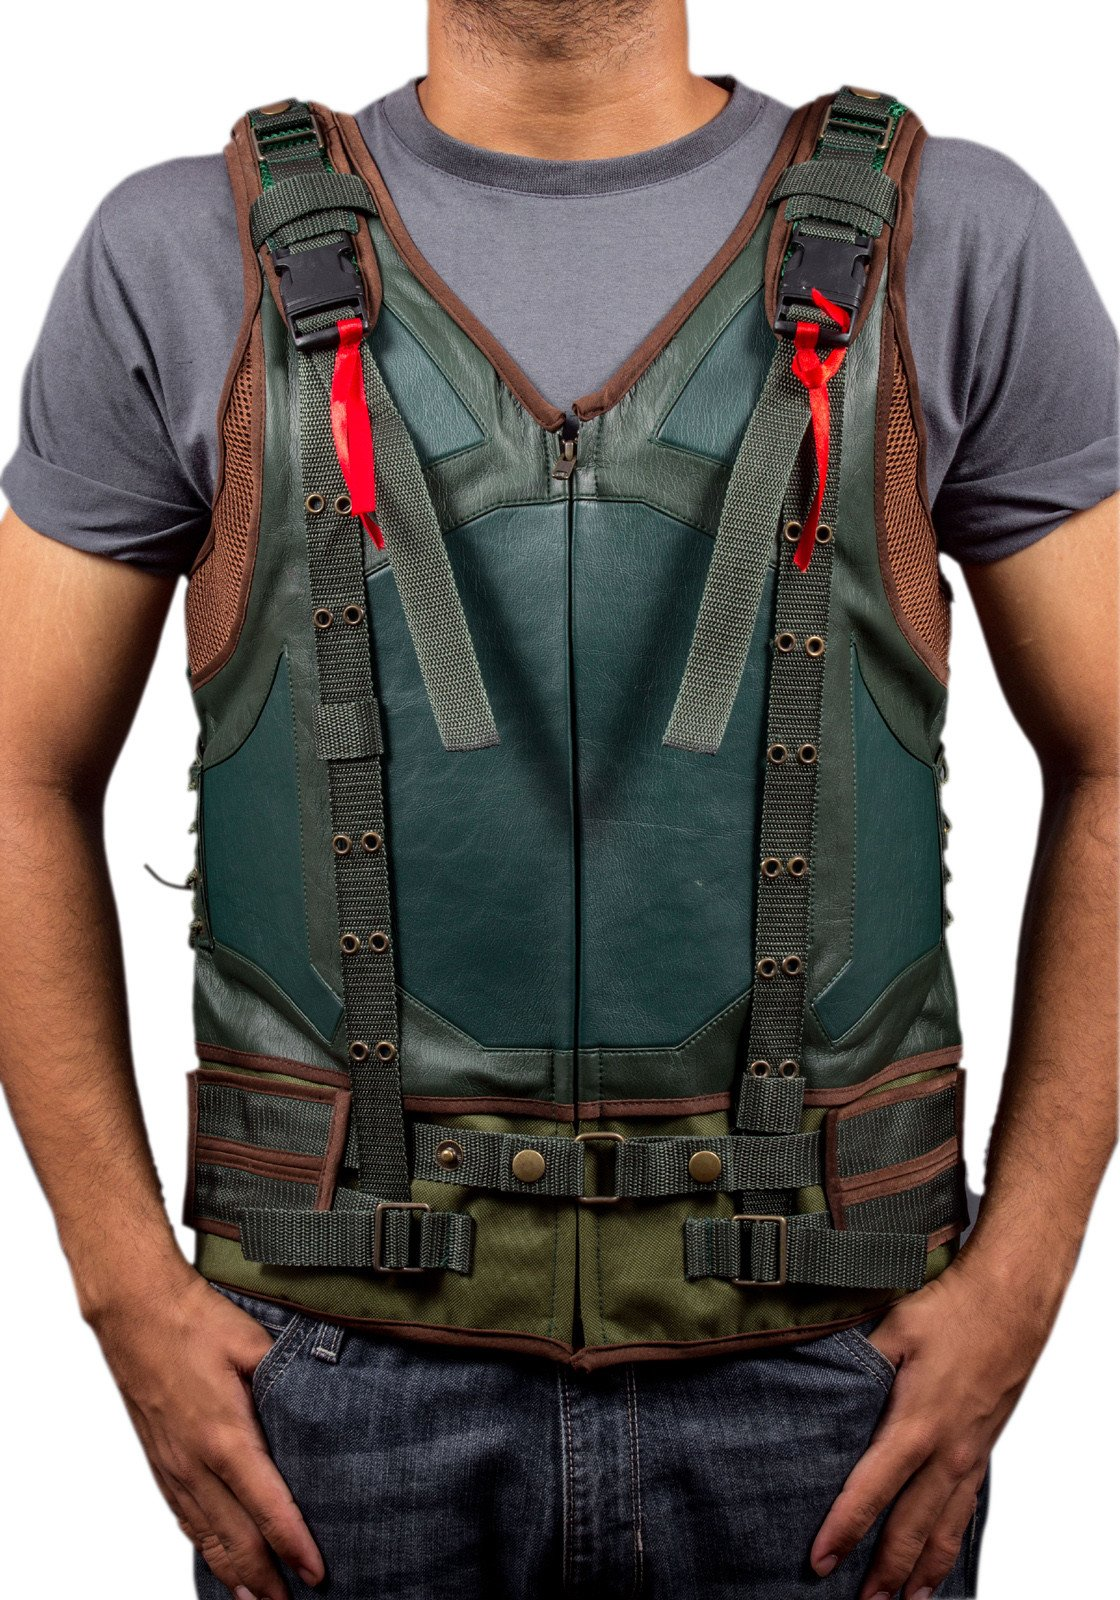 F&H Boy's Bane The DarkKnight Rises Synthetic Leather Vest M Green